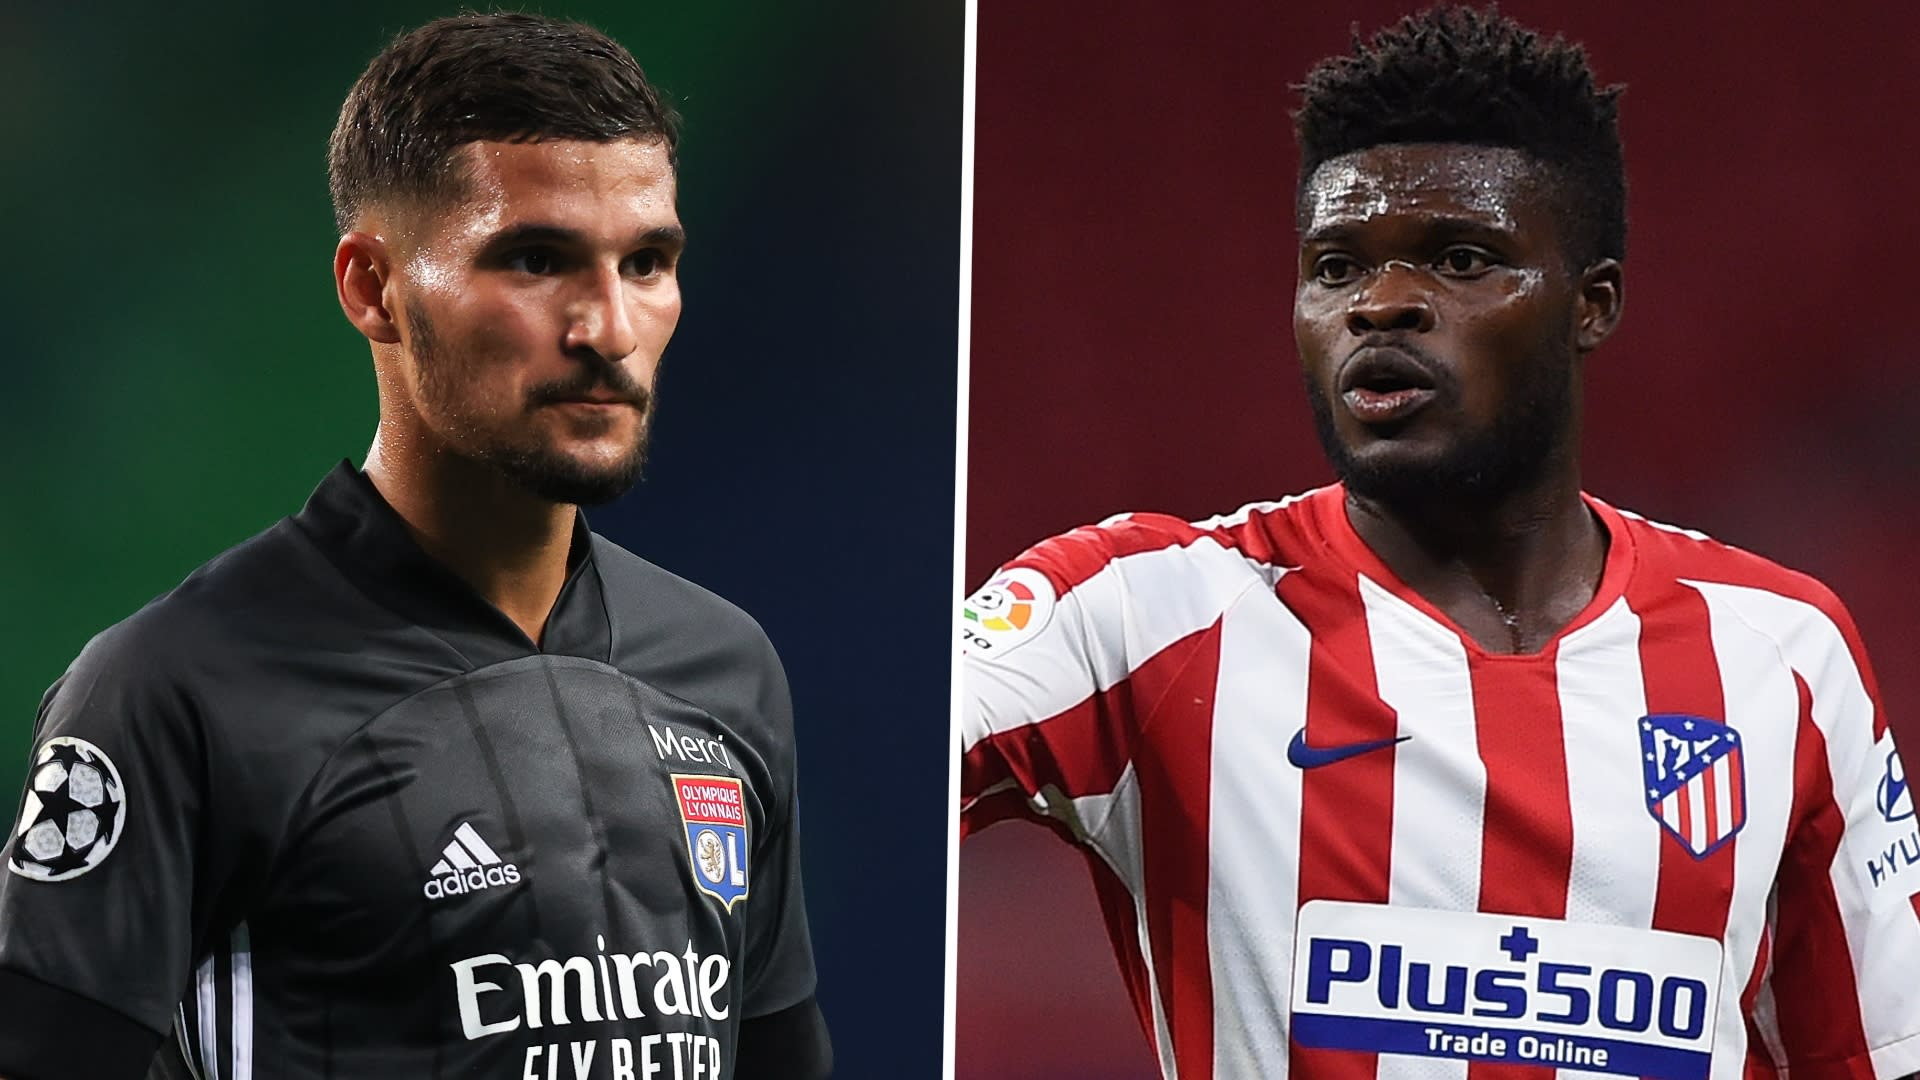 'Arsenal should prioritise Partey over Aouar' – Winterburn doubts Arteta can afford both